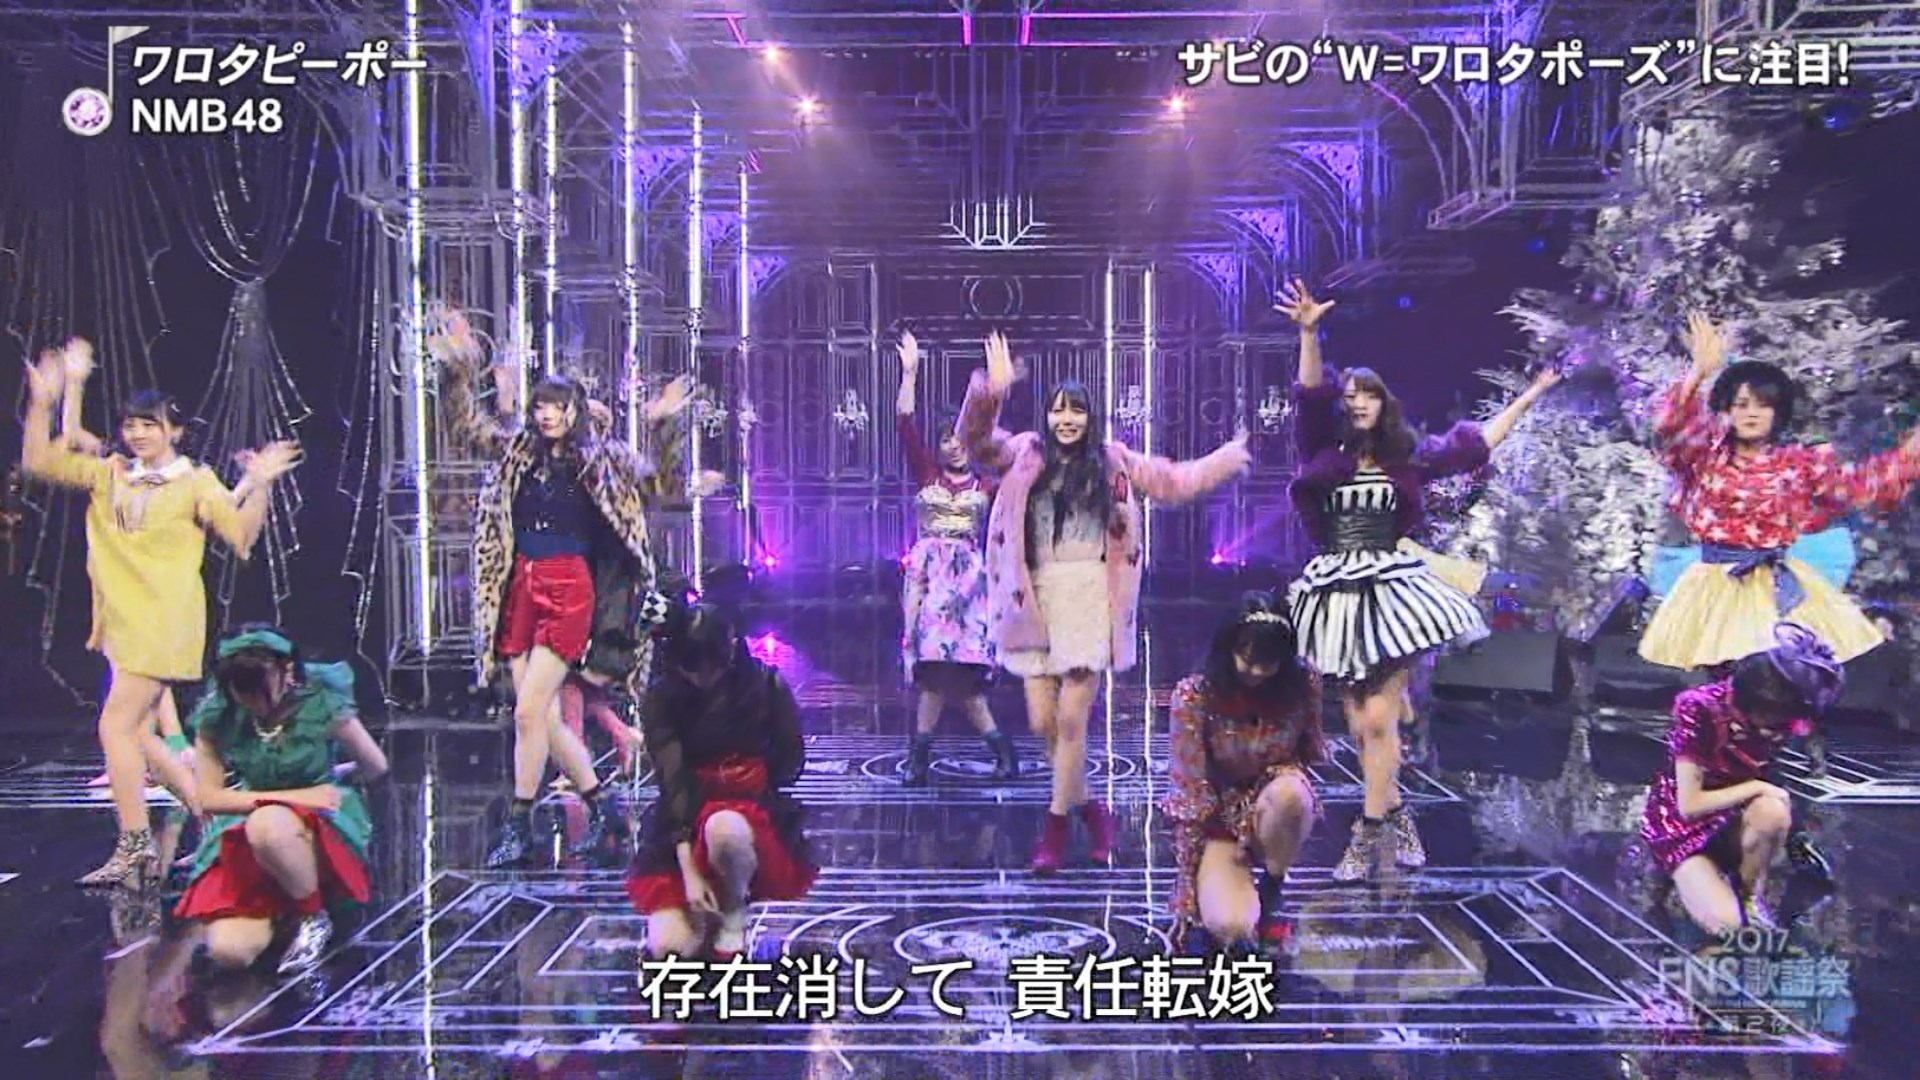 2017FNS歌謡祭第2夜・NMB48ワロタピーポーキャプ-049